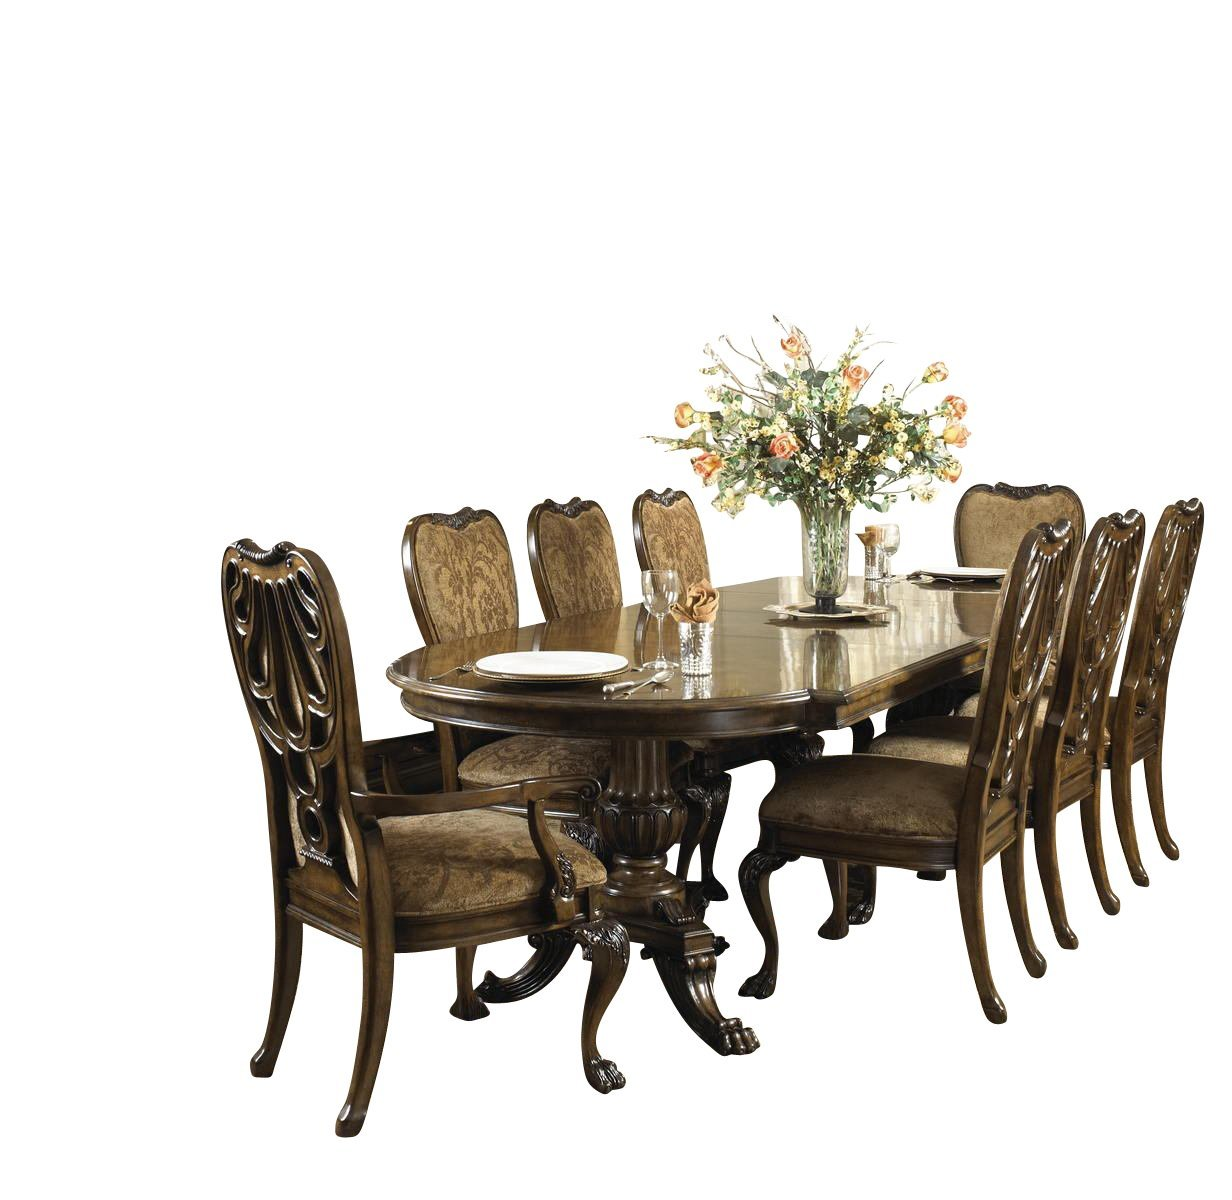 Fine Furniture Design Belvedere Casual Dining Room Set With Dining Table, 6  X Side Chair